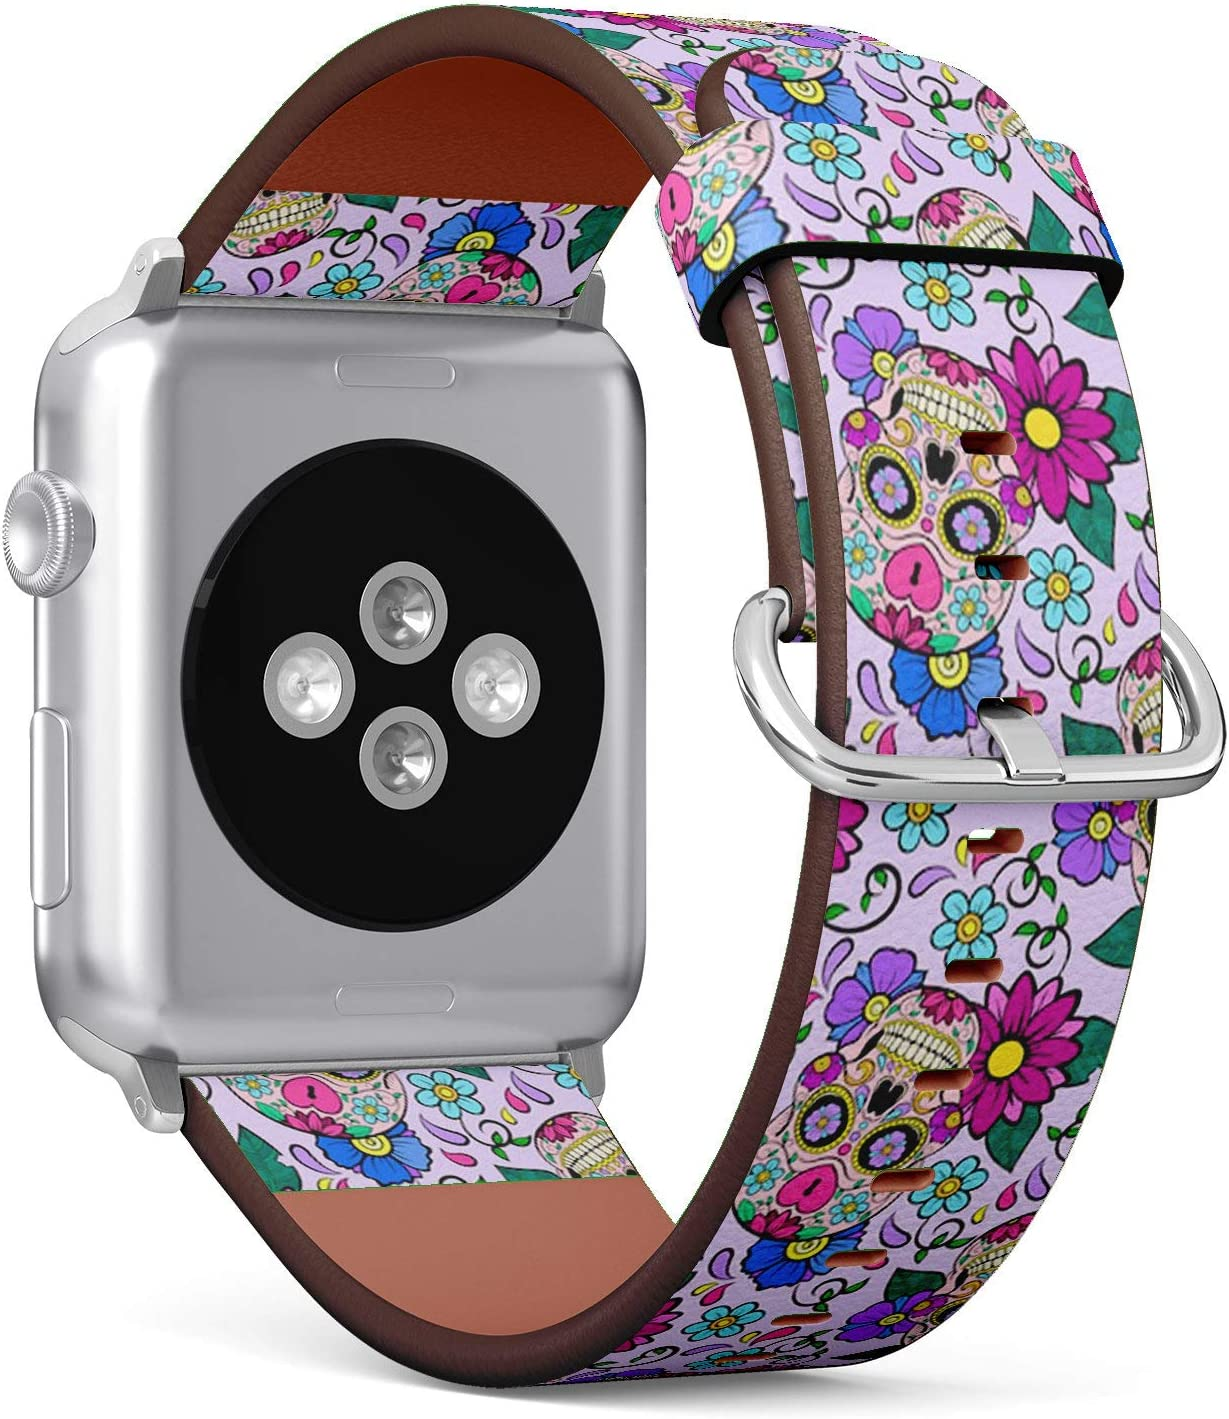 Compatible with Small Apple Watch 38mm & 40mm (All Series) Leather Watch Wrist Band Strap Bracelet with Stainless Steel Clasp and Adapters (Festive Sugar Skulls Heart)